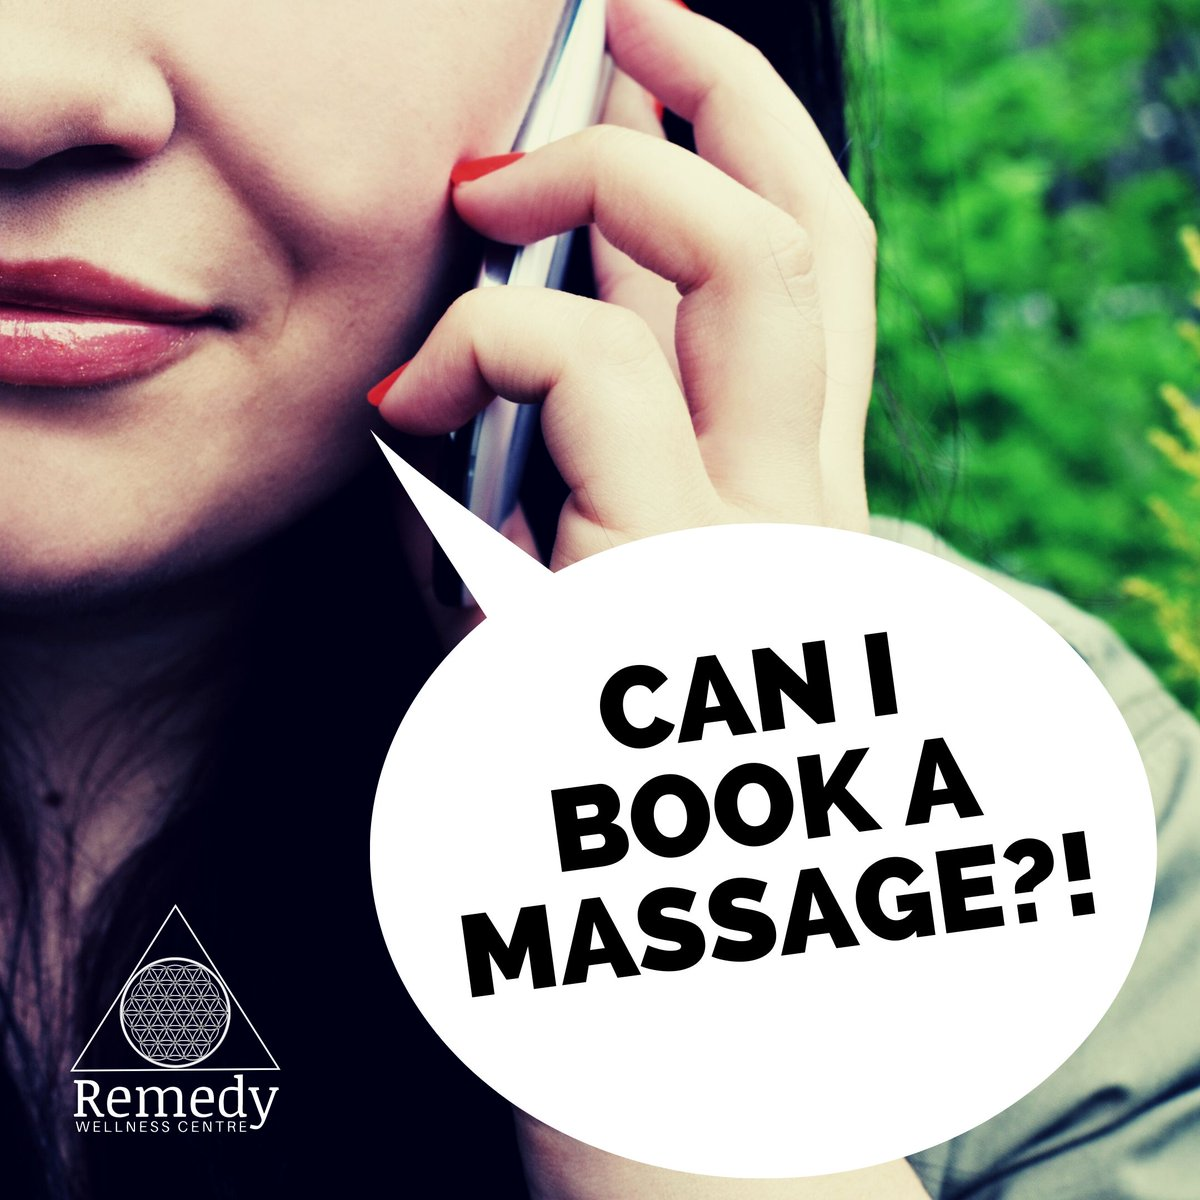 We had a last minute cancellation! A coveted evening massage therapy spot is now available - 4:45pm TODAY July 13th! Do you have some aches and pains that could use a treatment? Be the first to call 250-590-5221 and it's yours! #massagetherapy #yyj #victoriabc